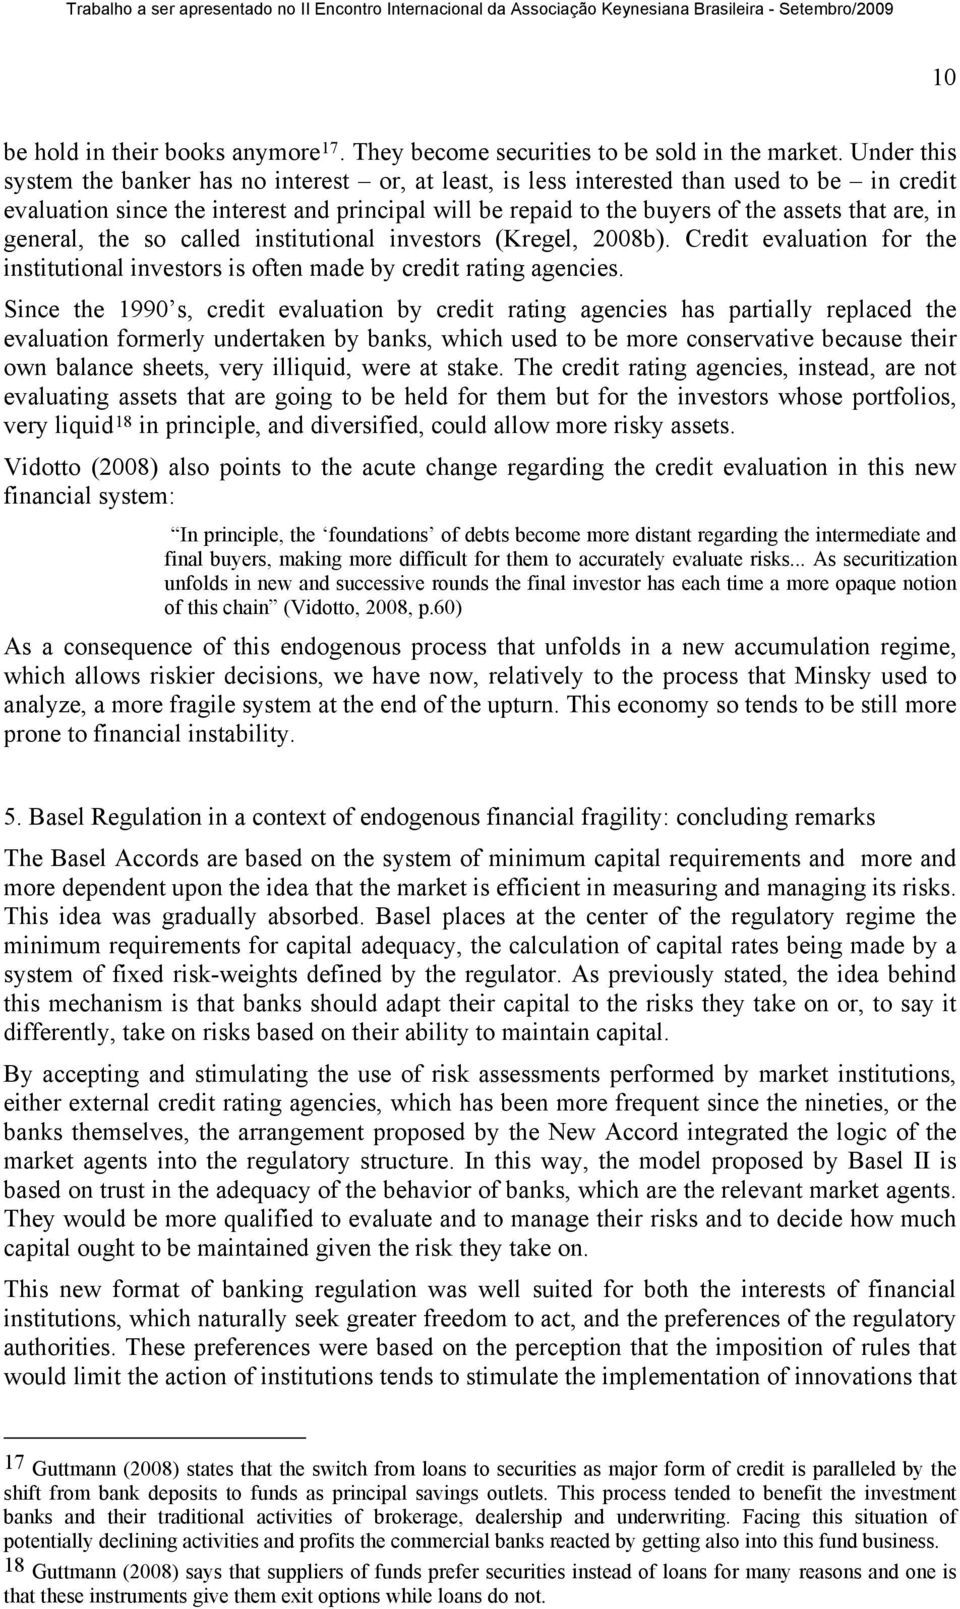 are, in general, the so called institutional investors (Kregel, 2008b). Credit evaluation for the institutional investors is often made by credit rating agencies.